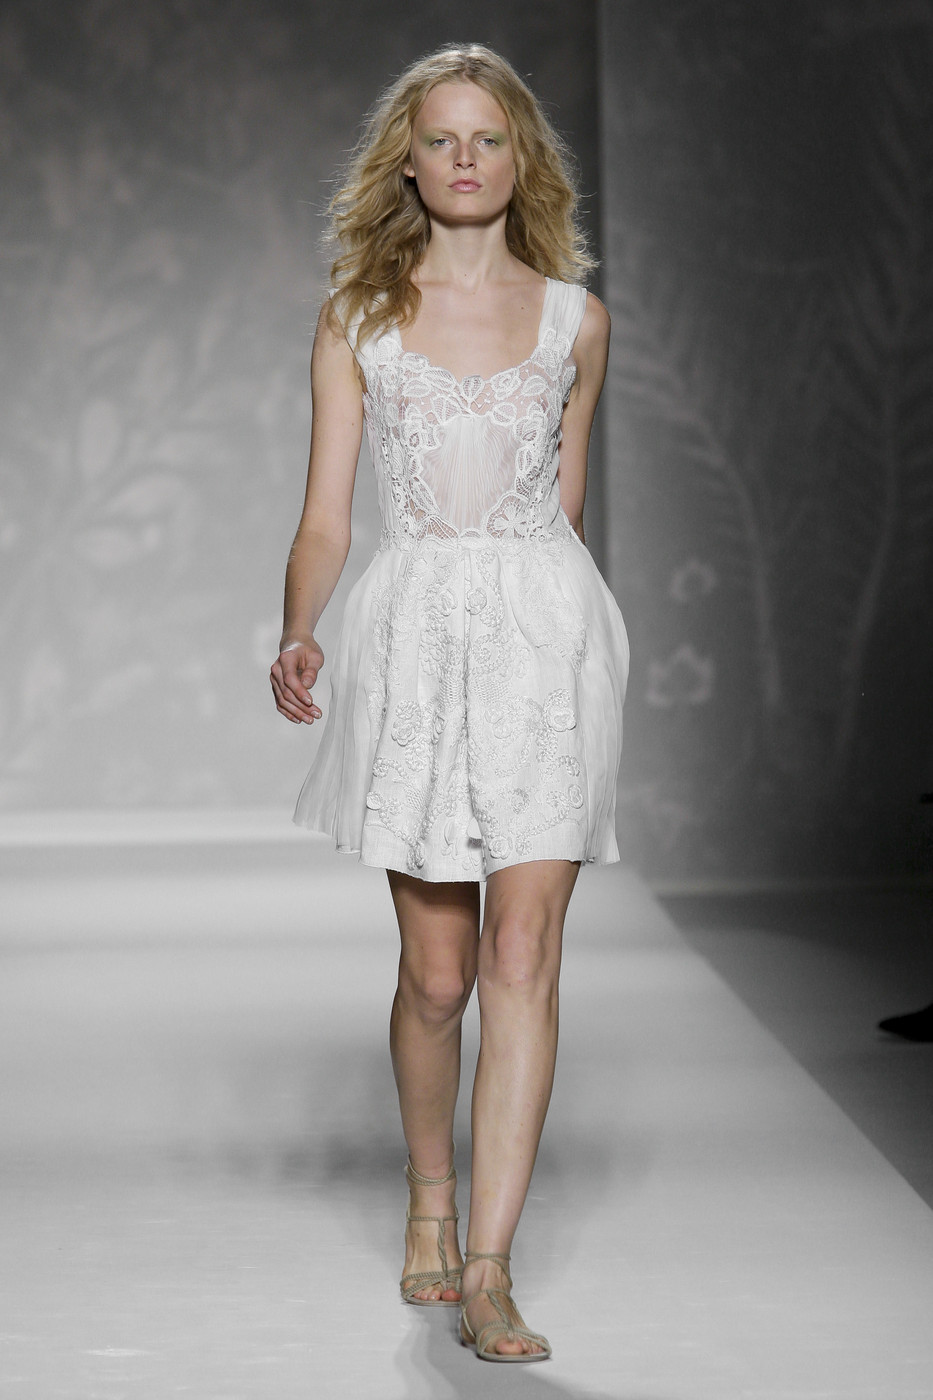 via fashioned by love | Alberta Ferretti Spring/Summer 2011 White